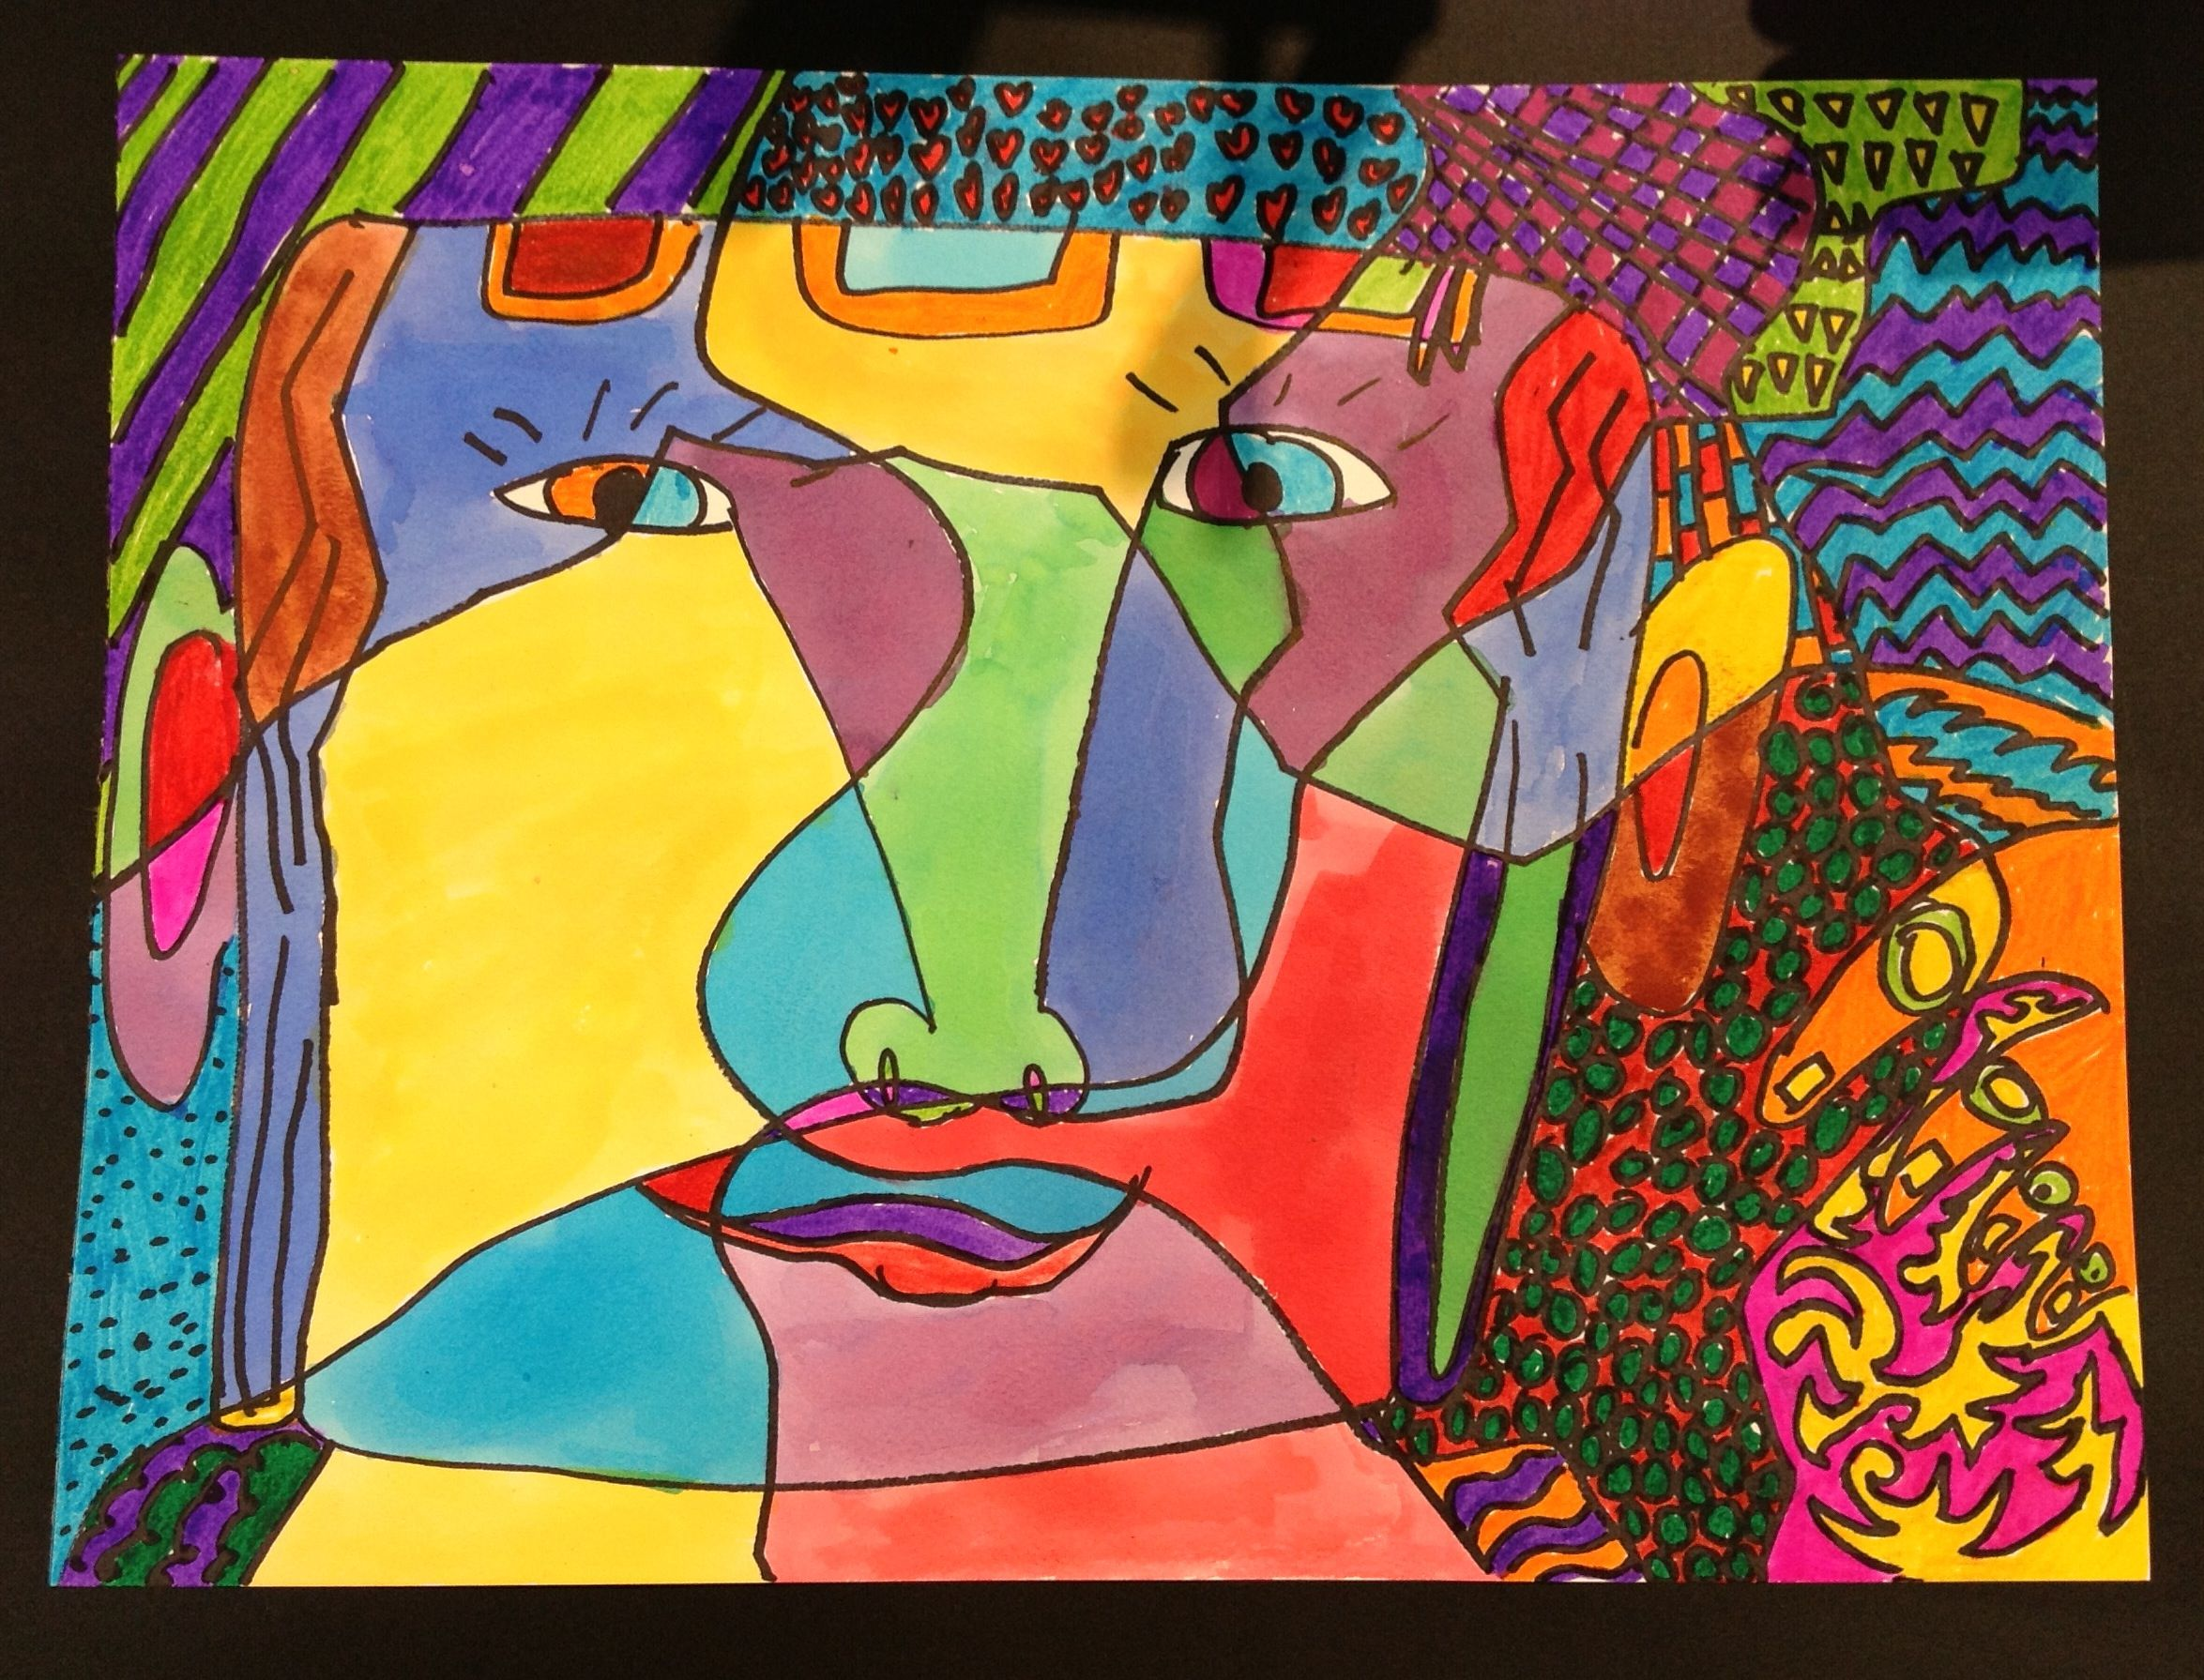 In the manner of picassos cubism self portrait with matisse inspired patterned background